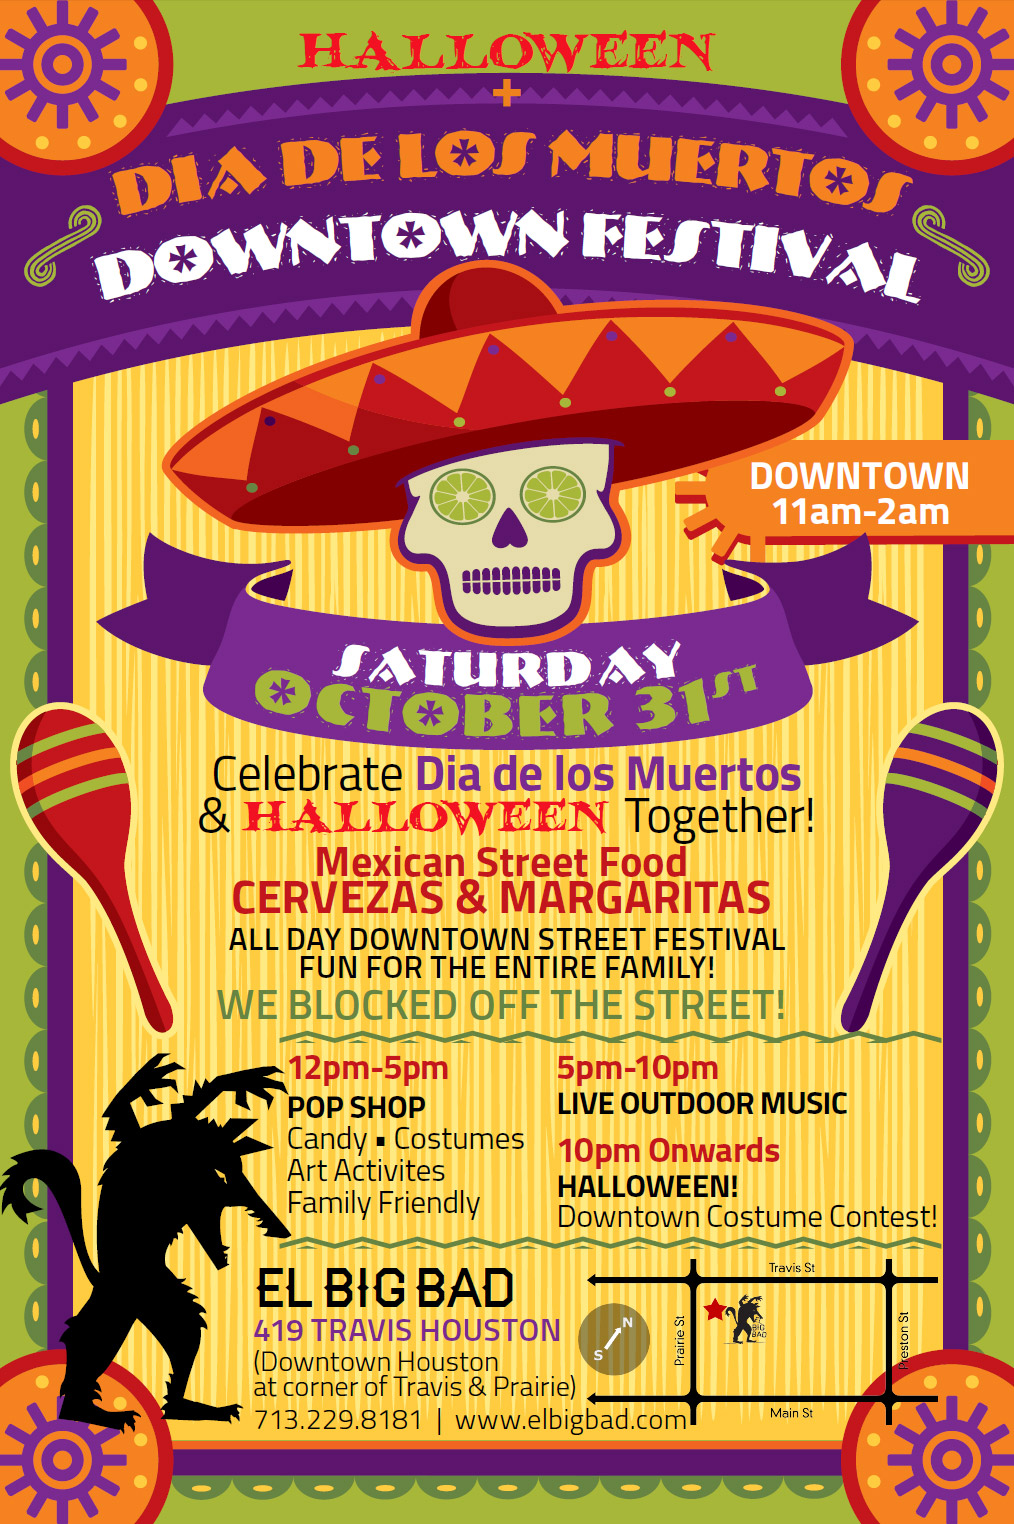 Halloween + Dia de los Muertos Downtown Festival on Saturday, October 31, 2015